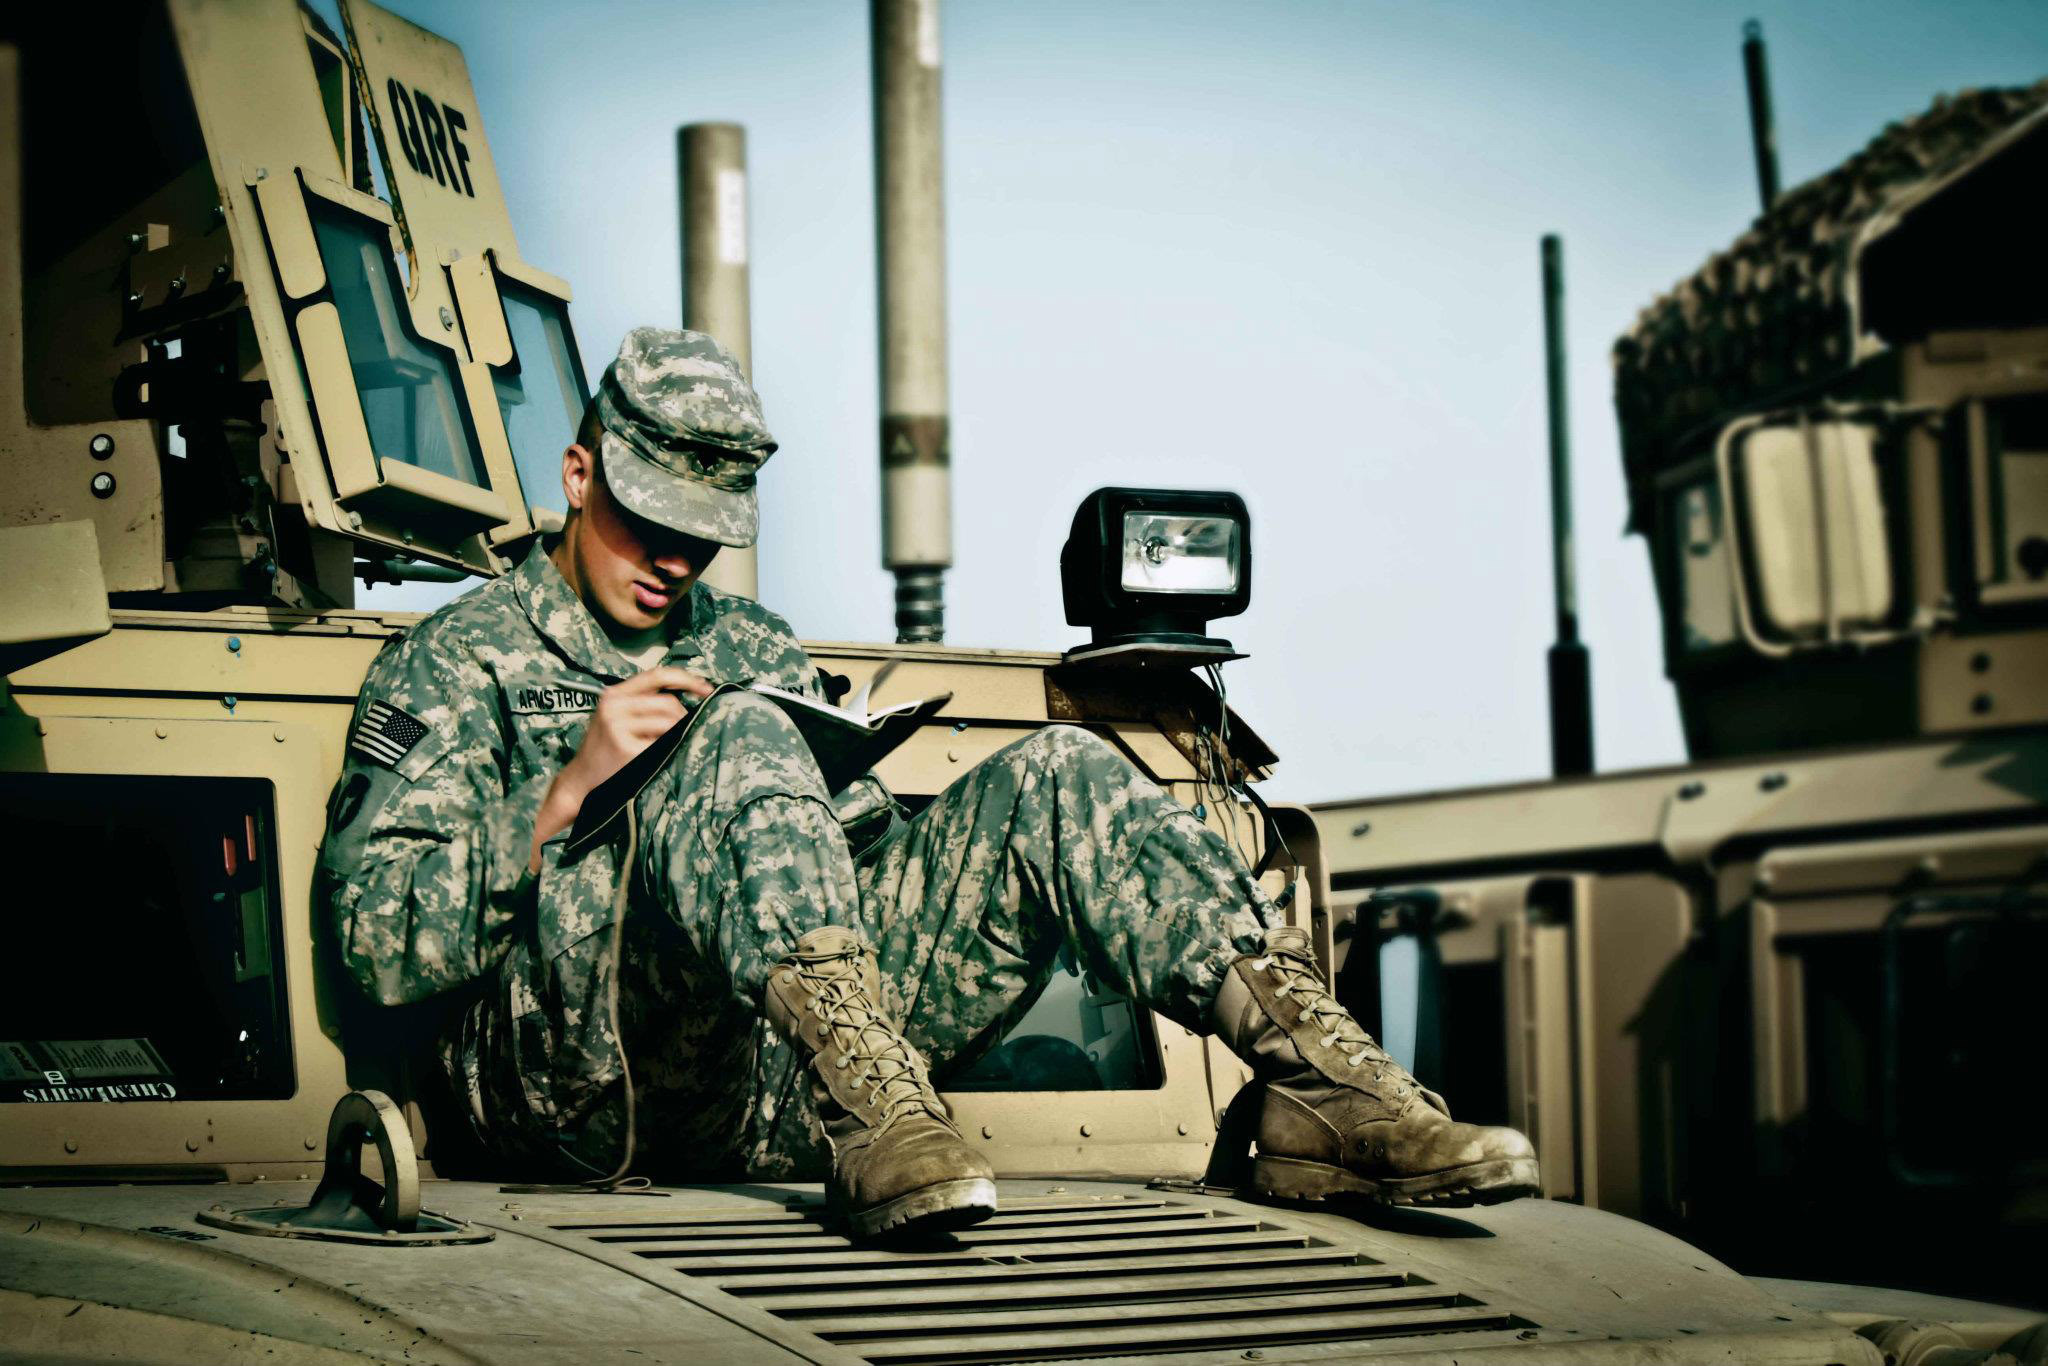 write to soldiers A soldier is one who fights as part of an army a soldier can be a conscripted or  volunteer enlisted person, a non-commissioned officer, or an officer.